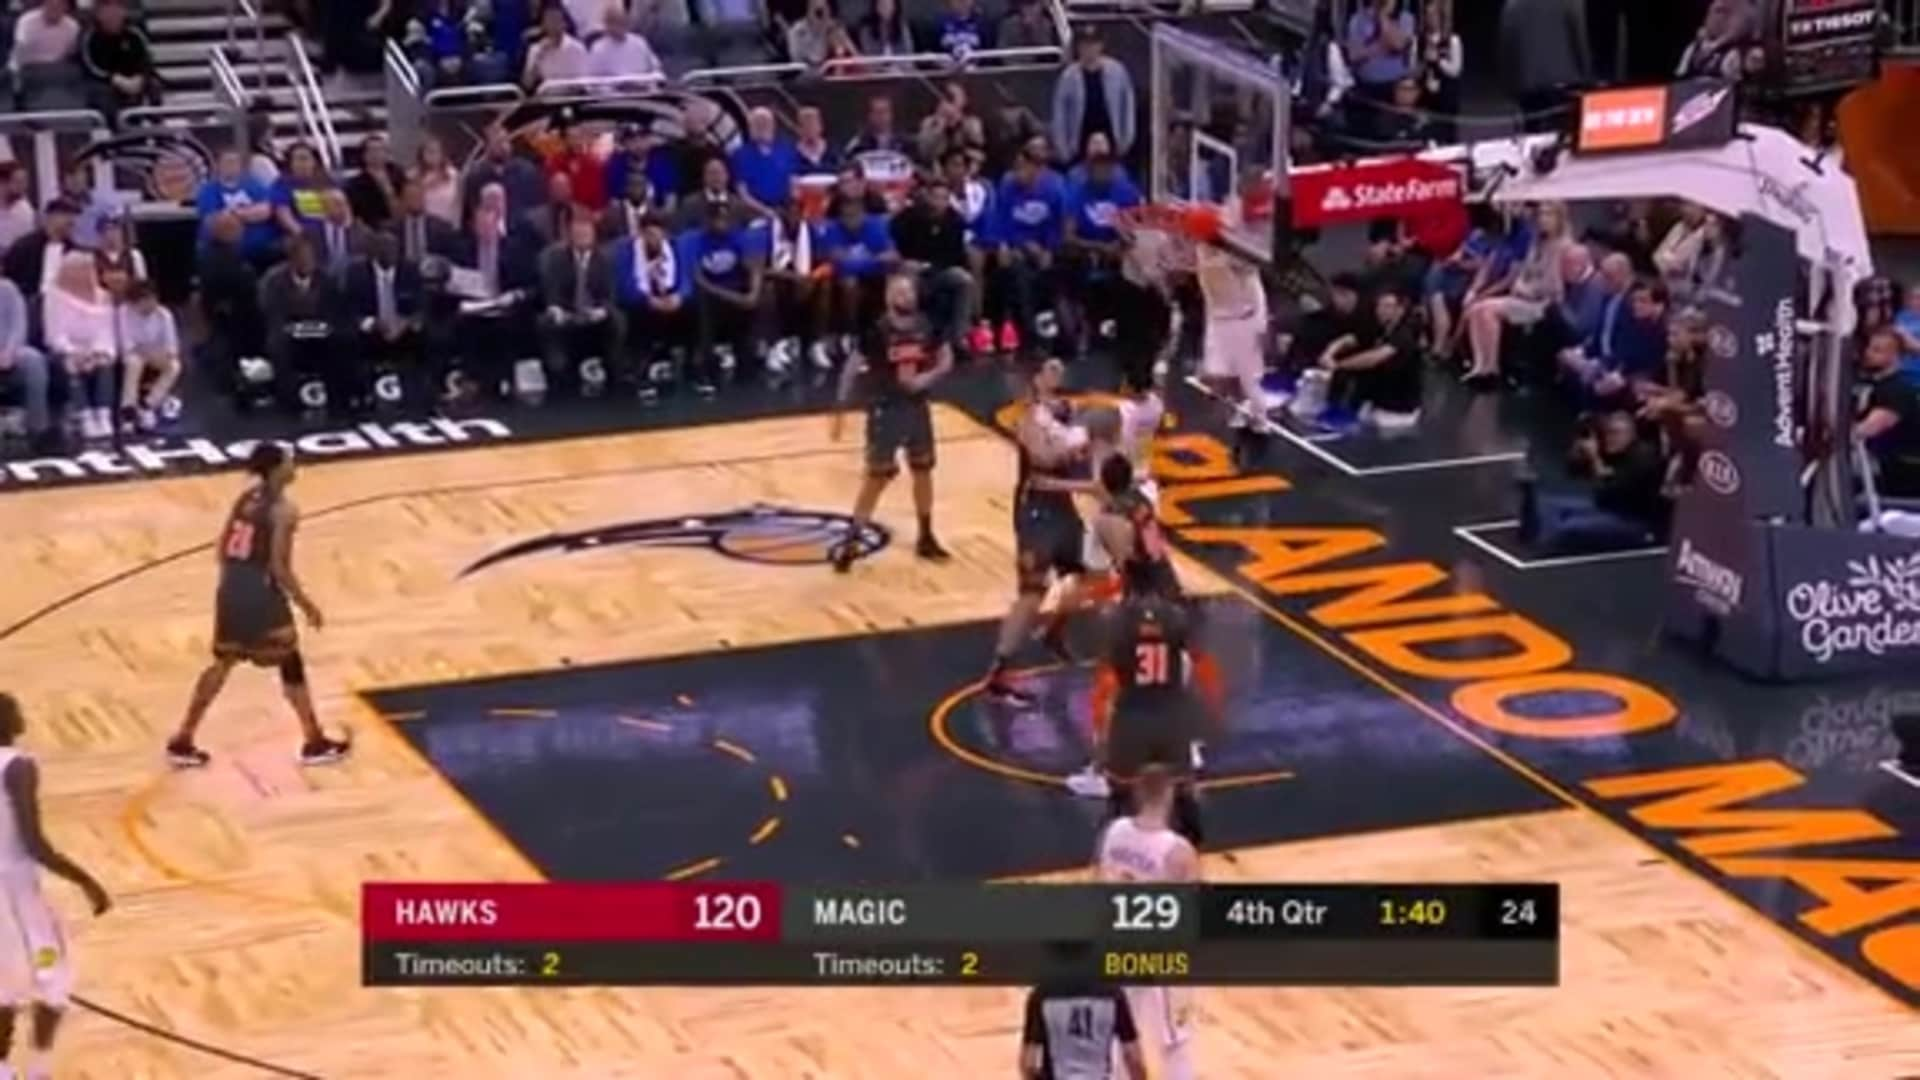 Young Scores 29 Points Against Magic